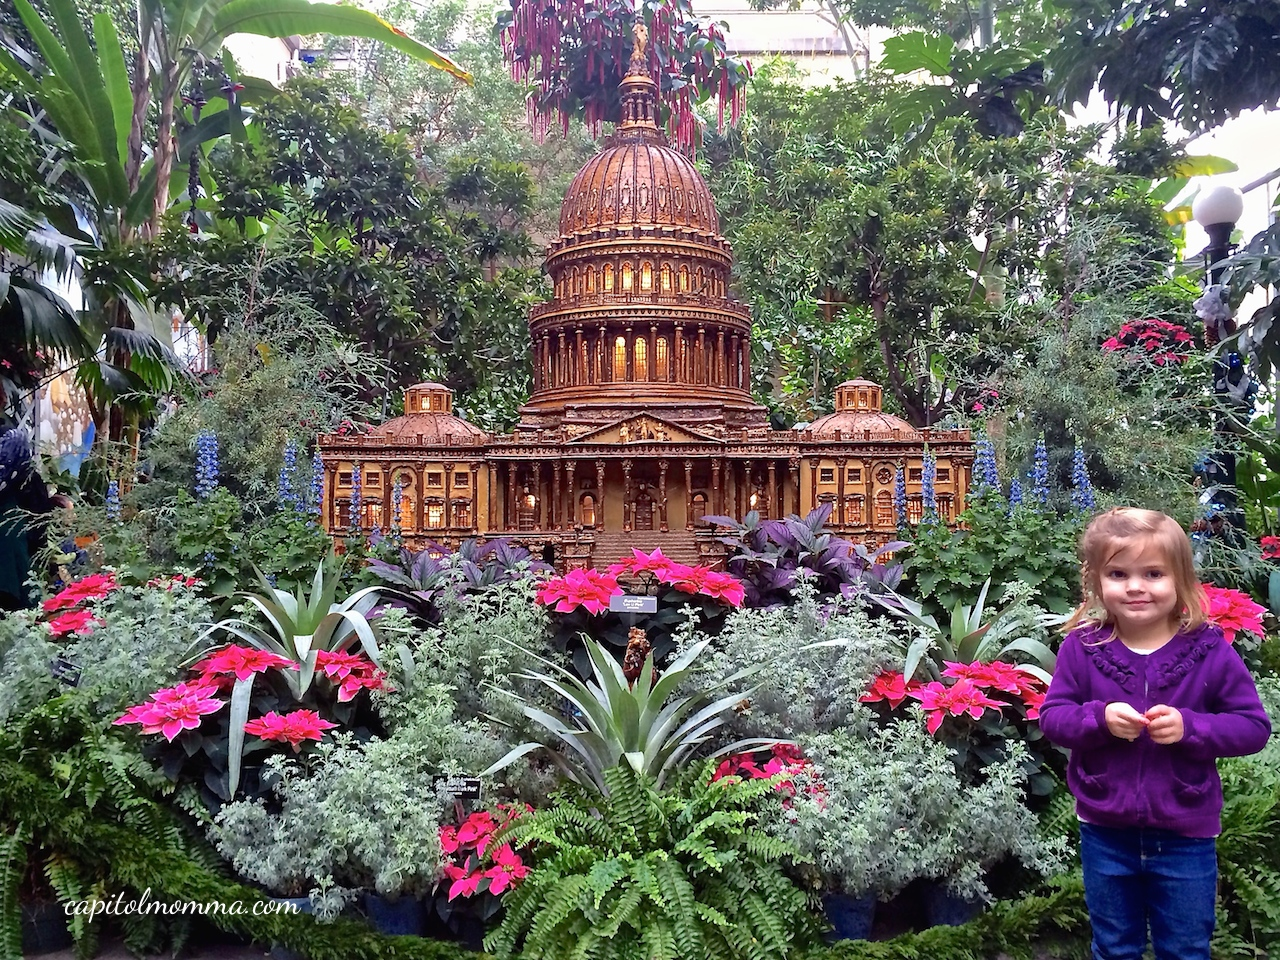 Season S Greetings At The United States Botanic Garden Capitol Momma